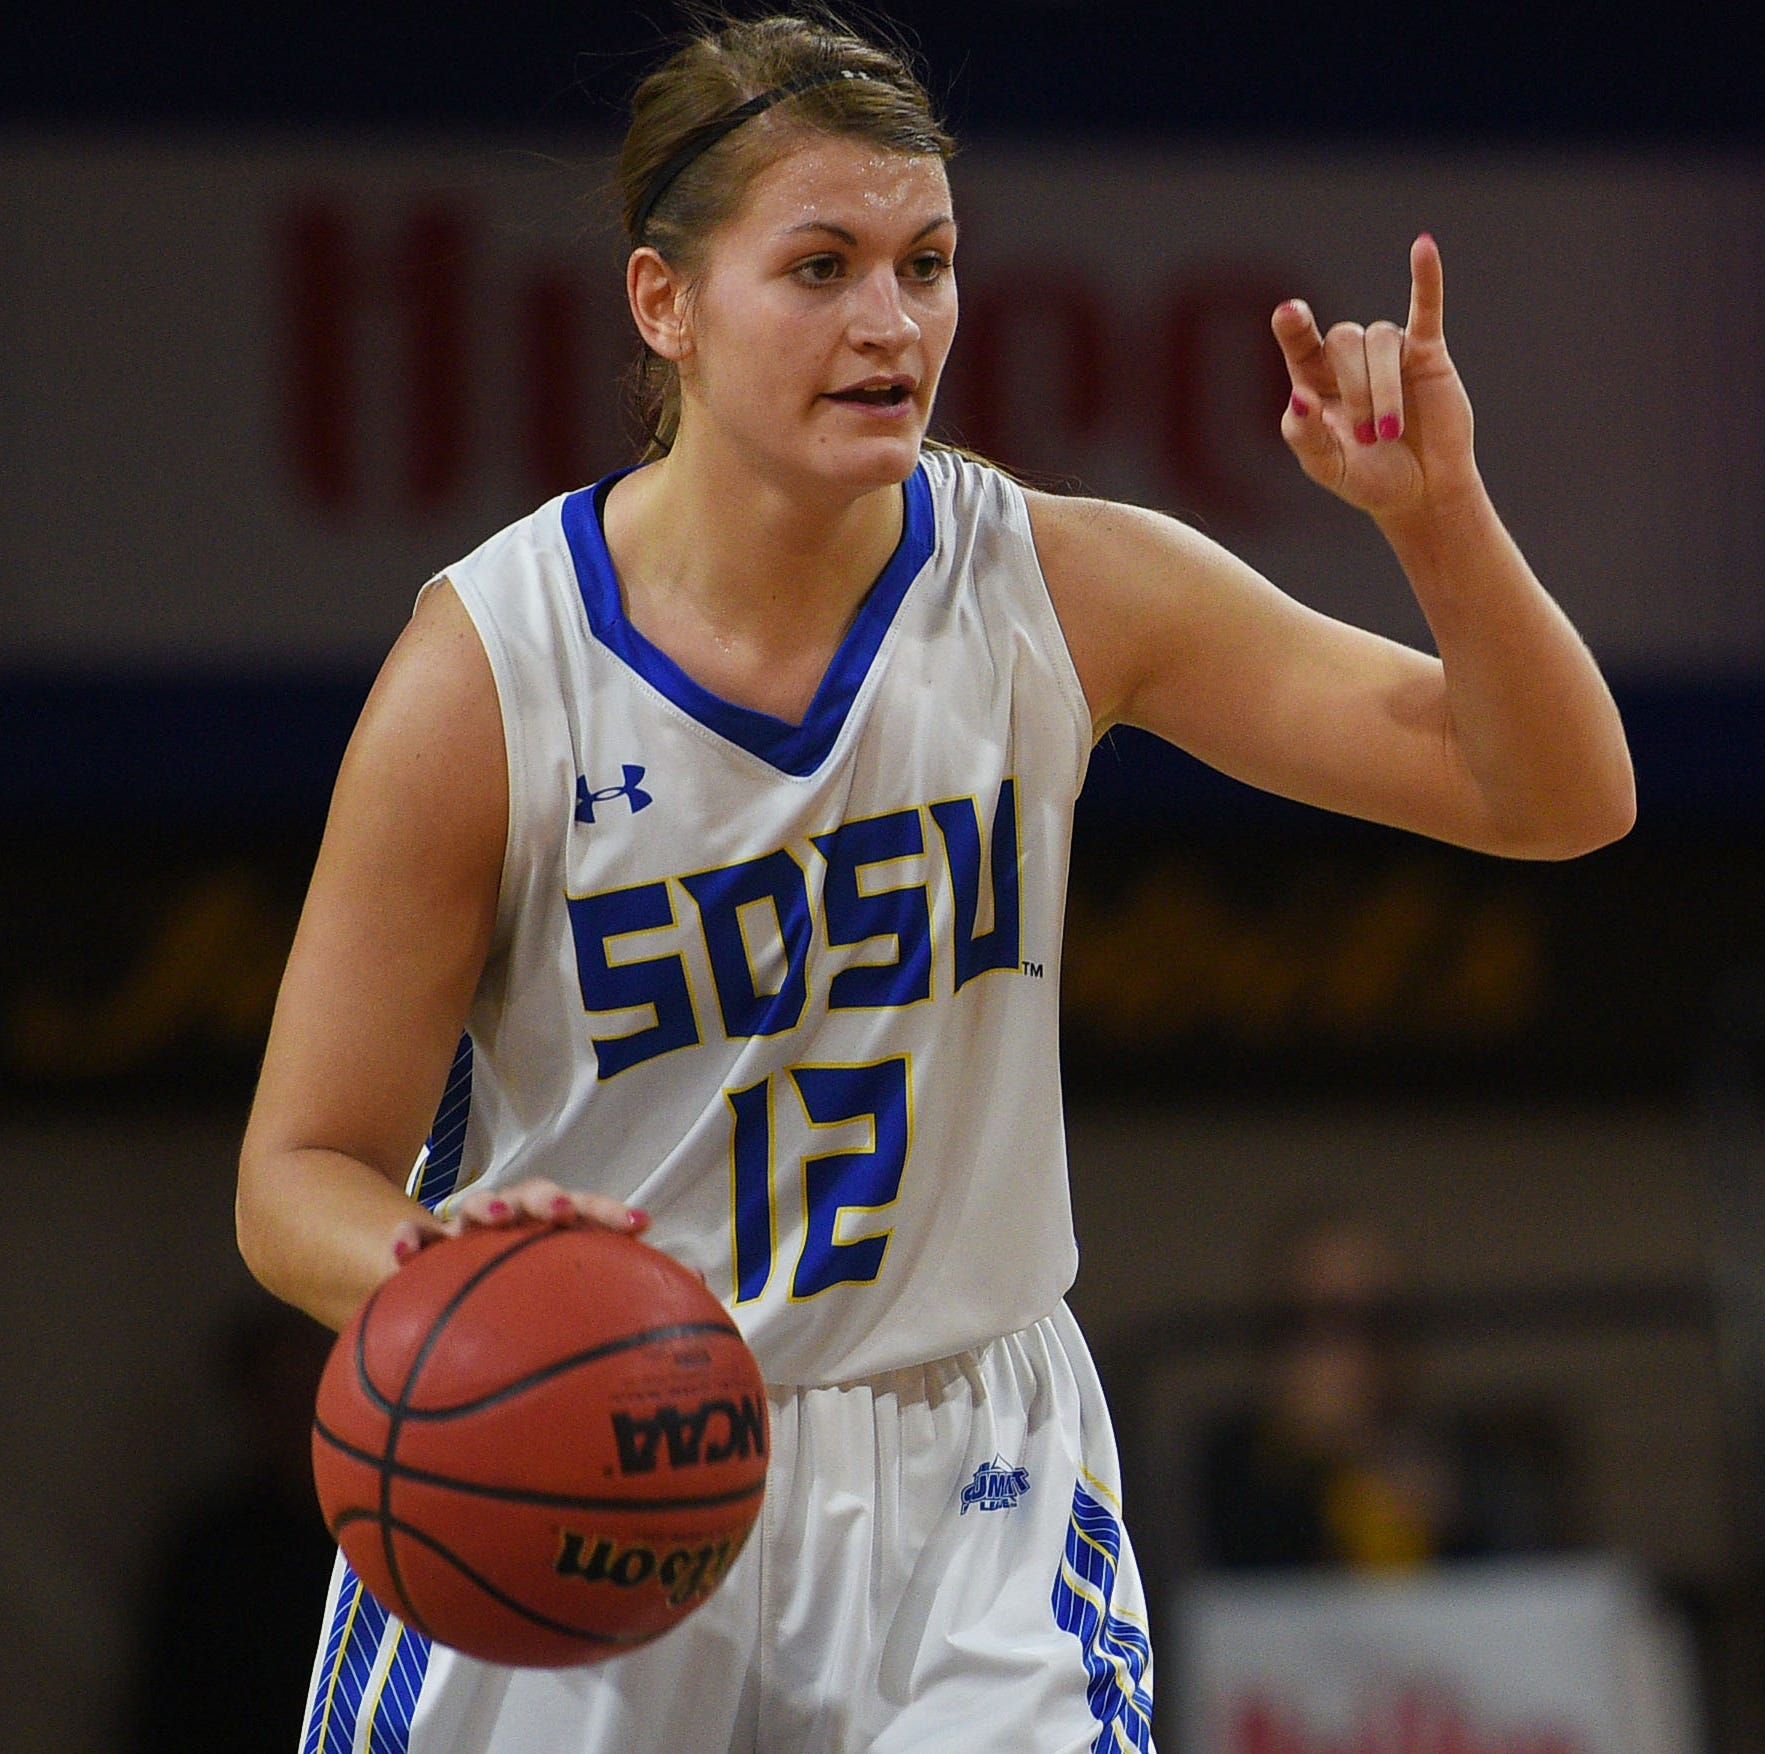 SDSU's Macy Miller signals to her team during the game against Green Bay Thursday, Nov. 29, at Frost Arena in Brookings.